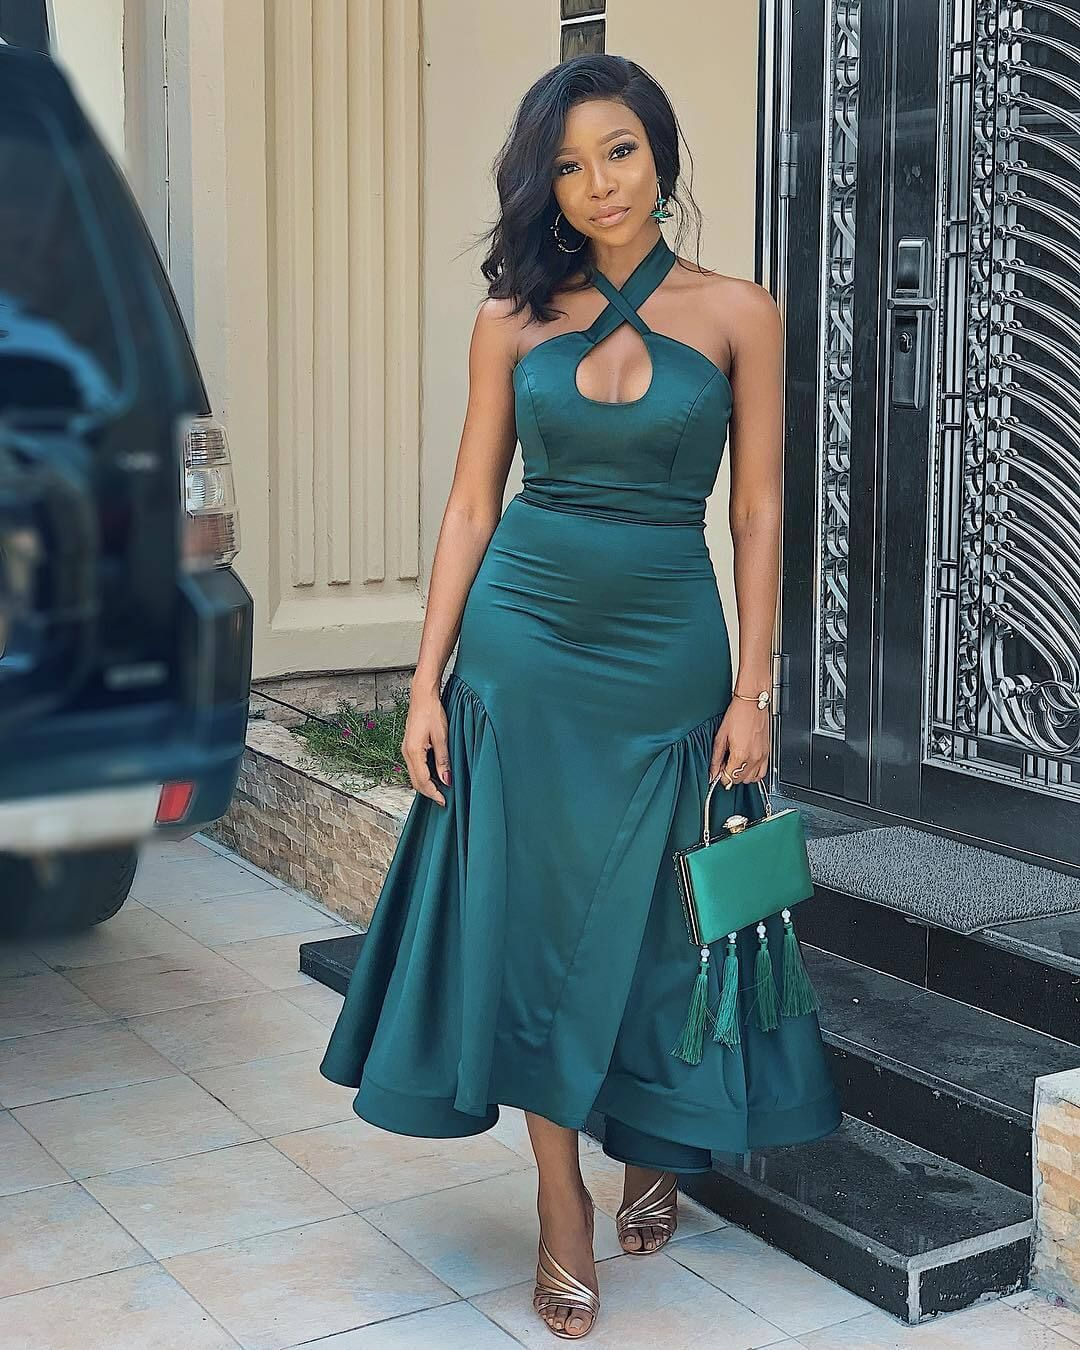 15 Wedding Guest Dresses Inspired By Actress Ini Dima Okojie Perfete Wedding Guest Outfit Wedding Guest Dress Guest Dresses [ 1350 x 1080 Pixel ]